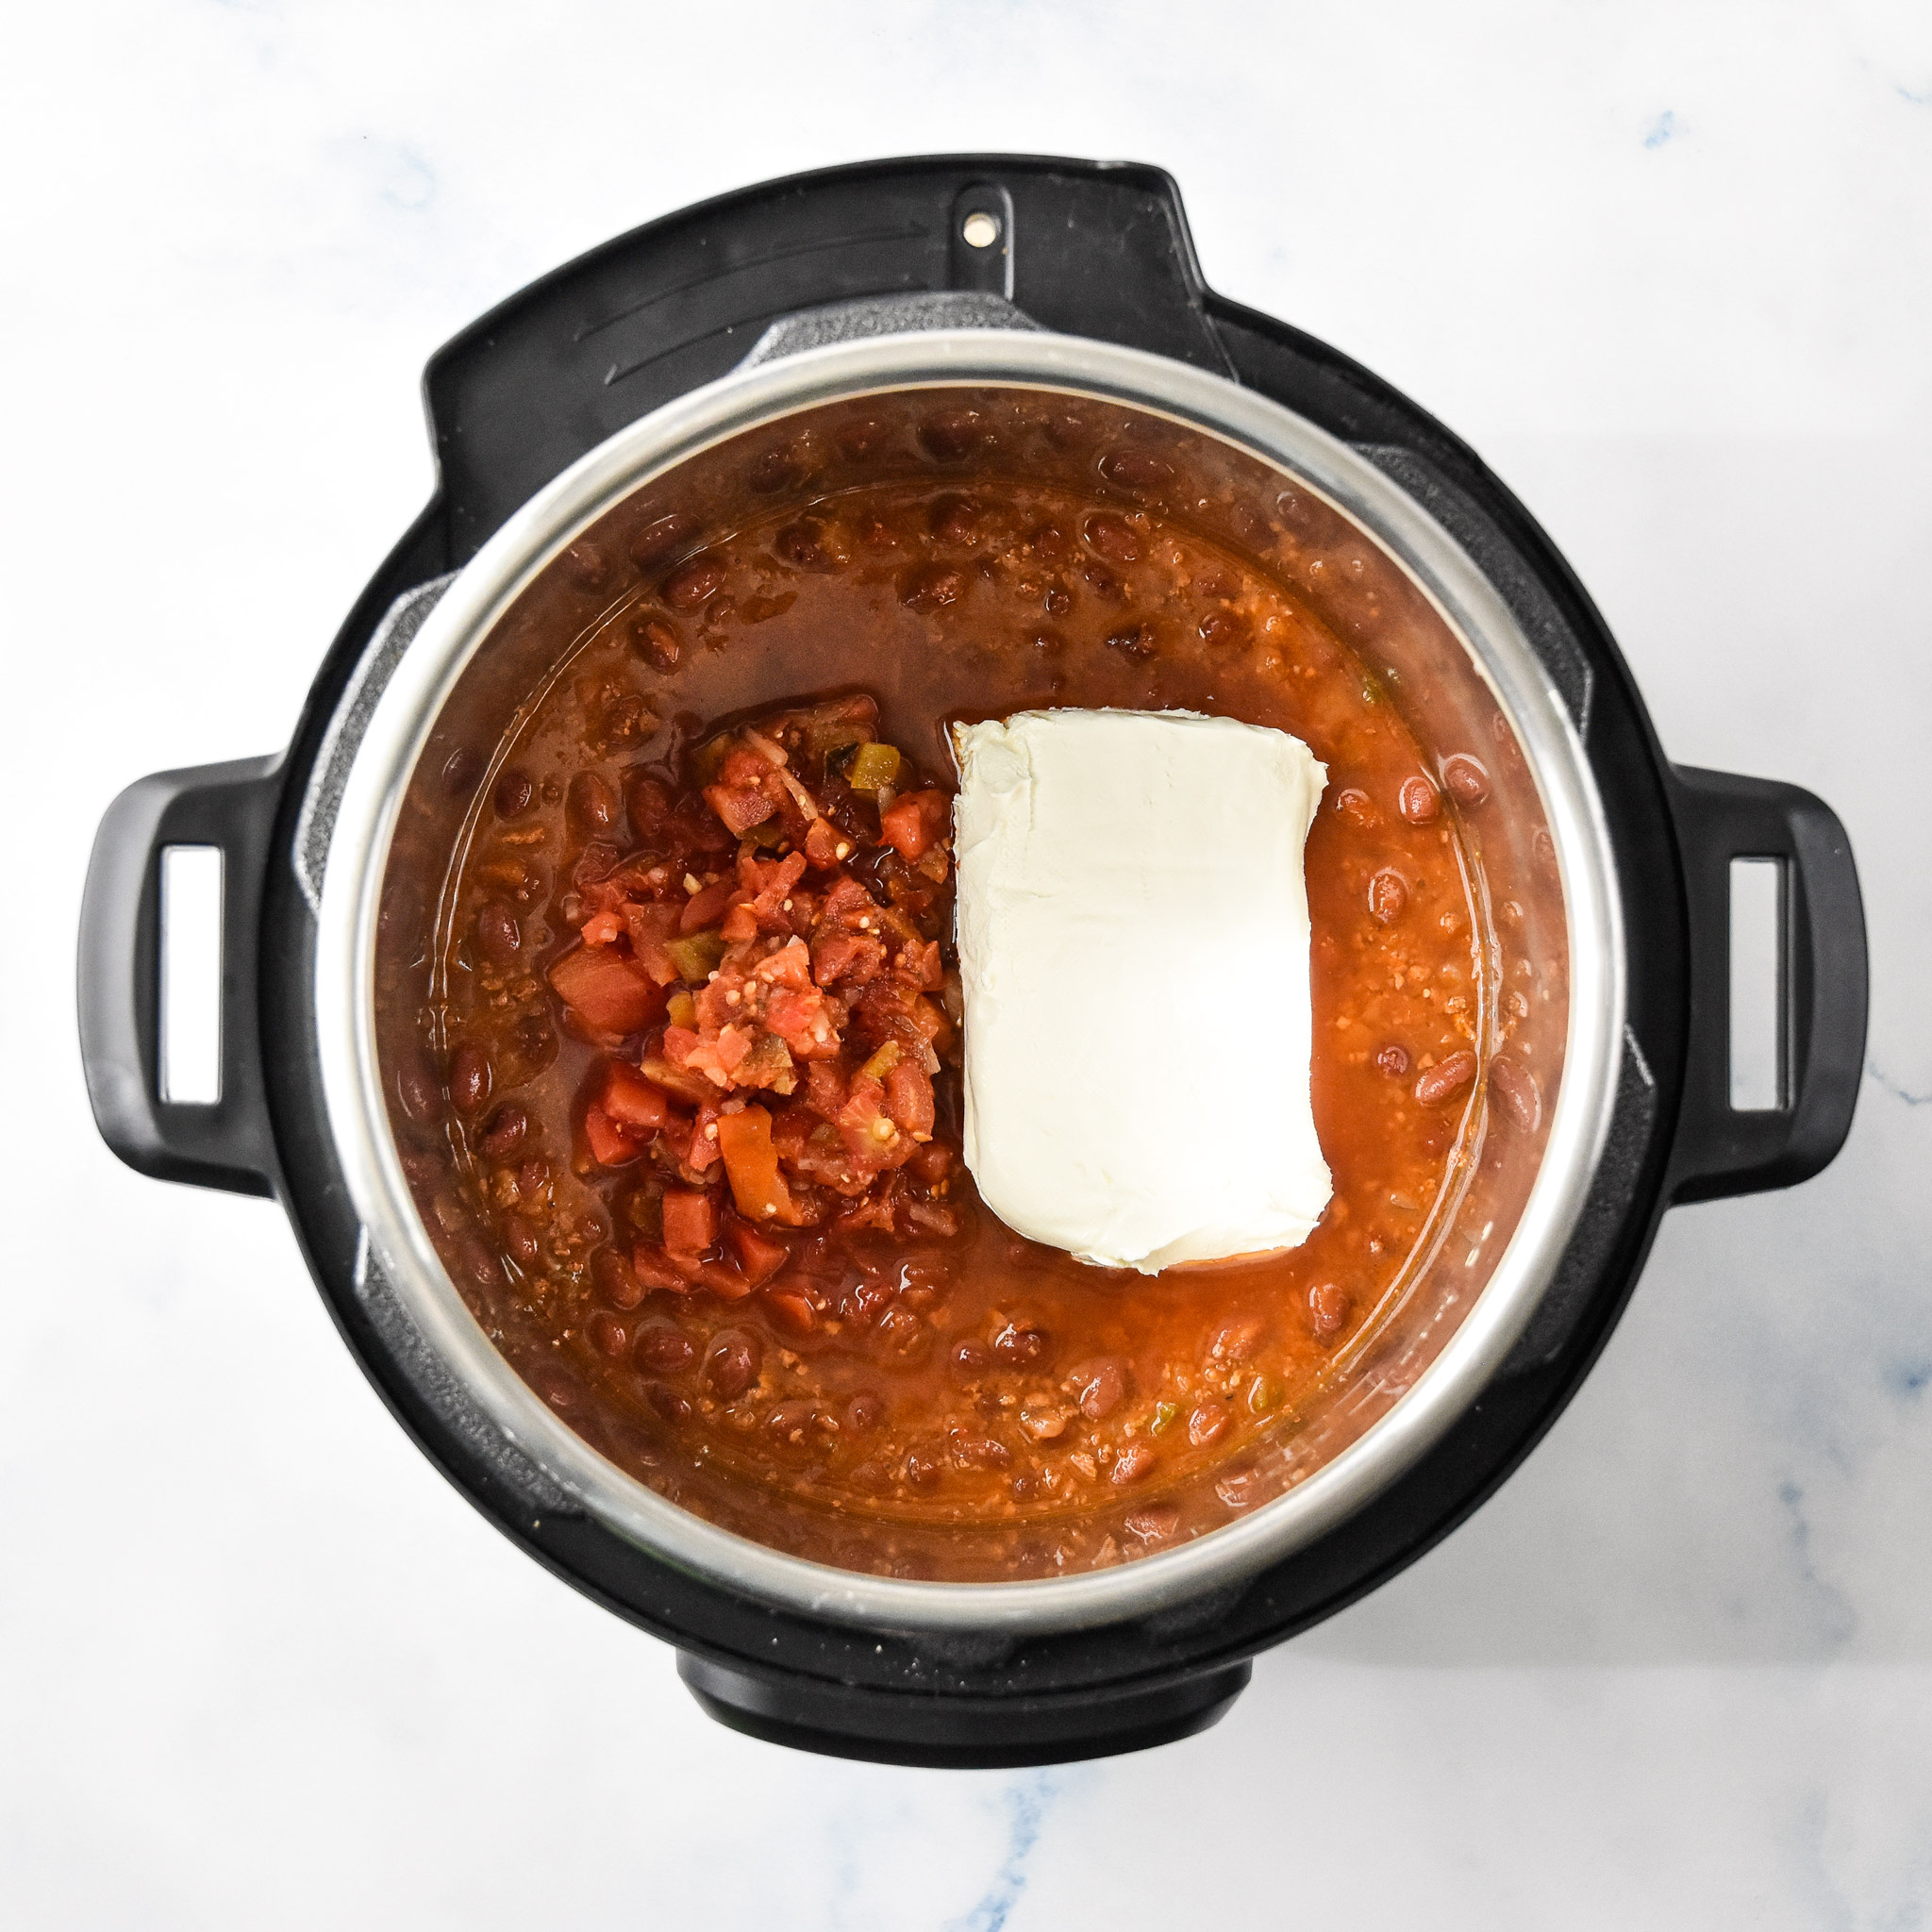 ingredients in the chili cheese dip in the instant pot